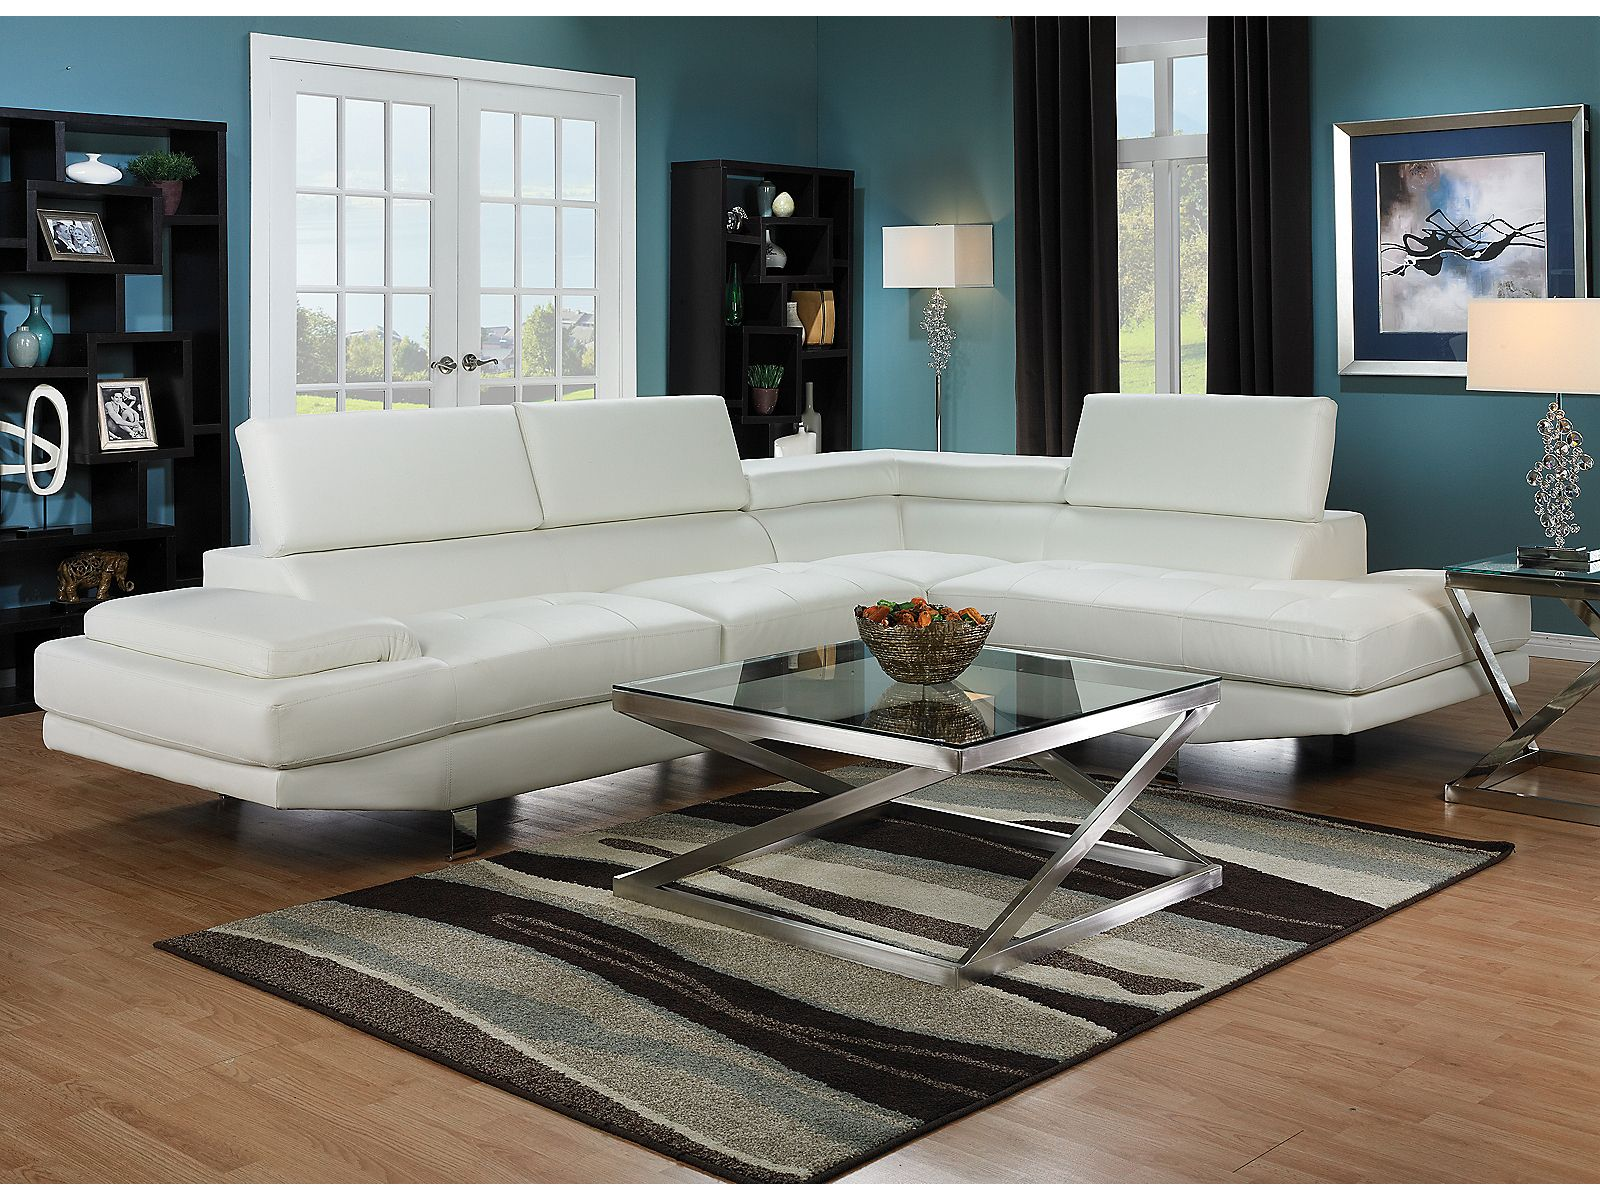 Zane 2 Piece Sectional with Right Facing Chaise White